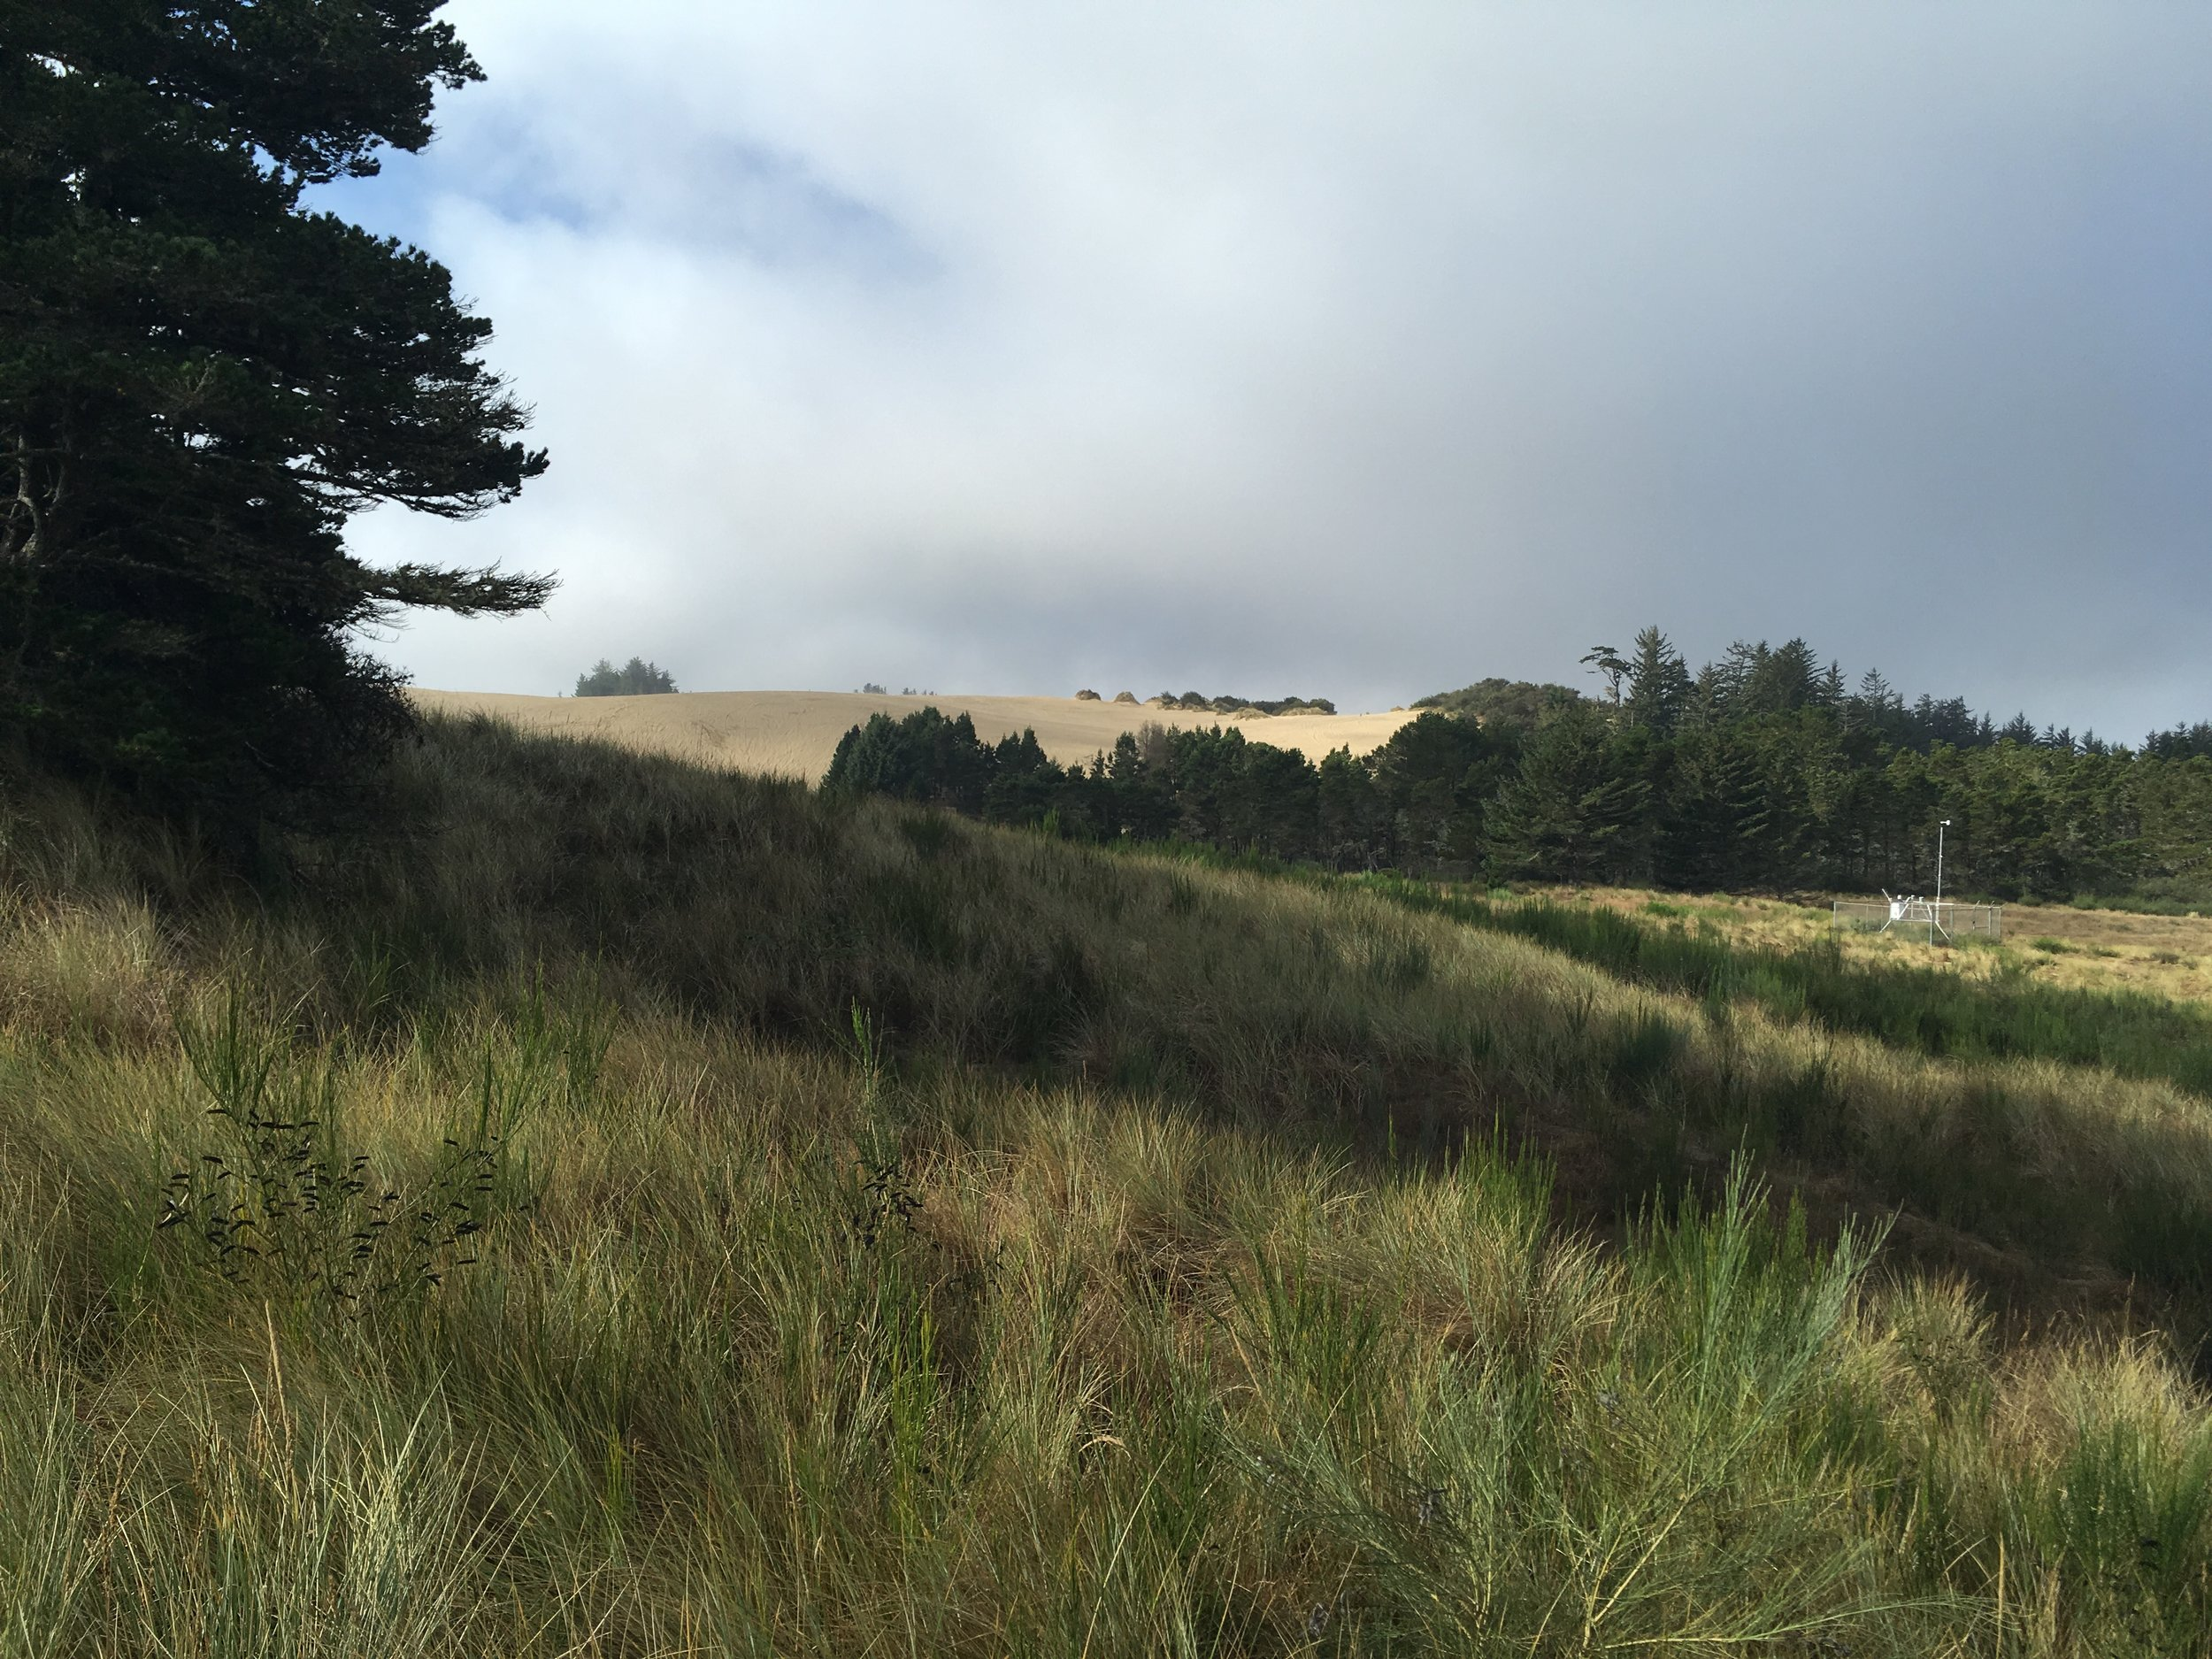 My first glimpse of the Oregon Dunes from South Jetty Road.